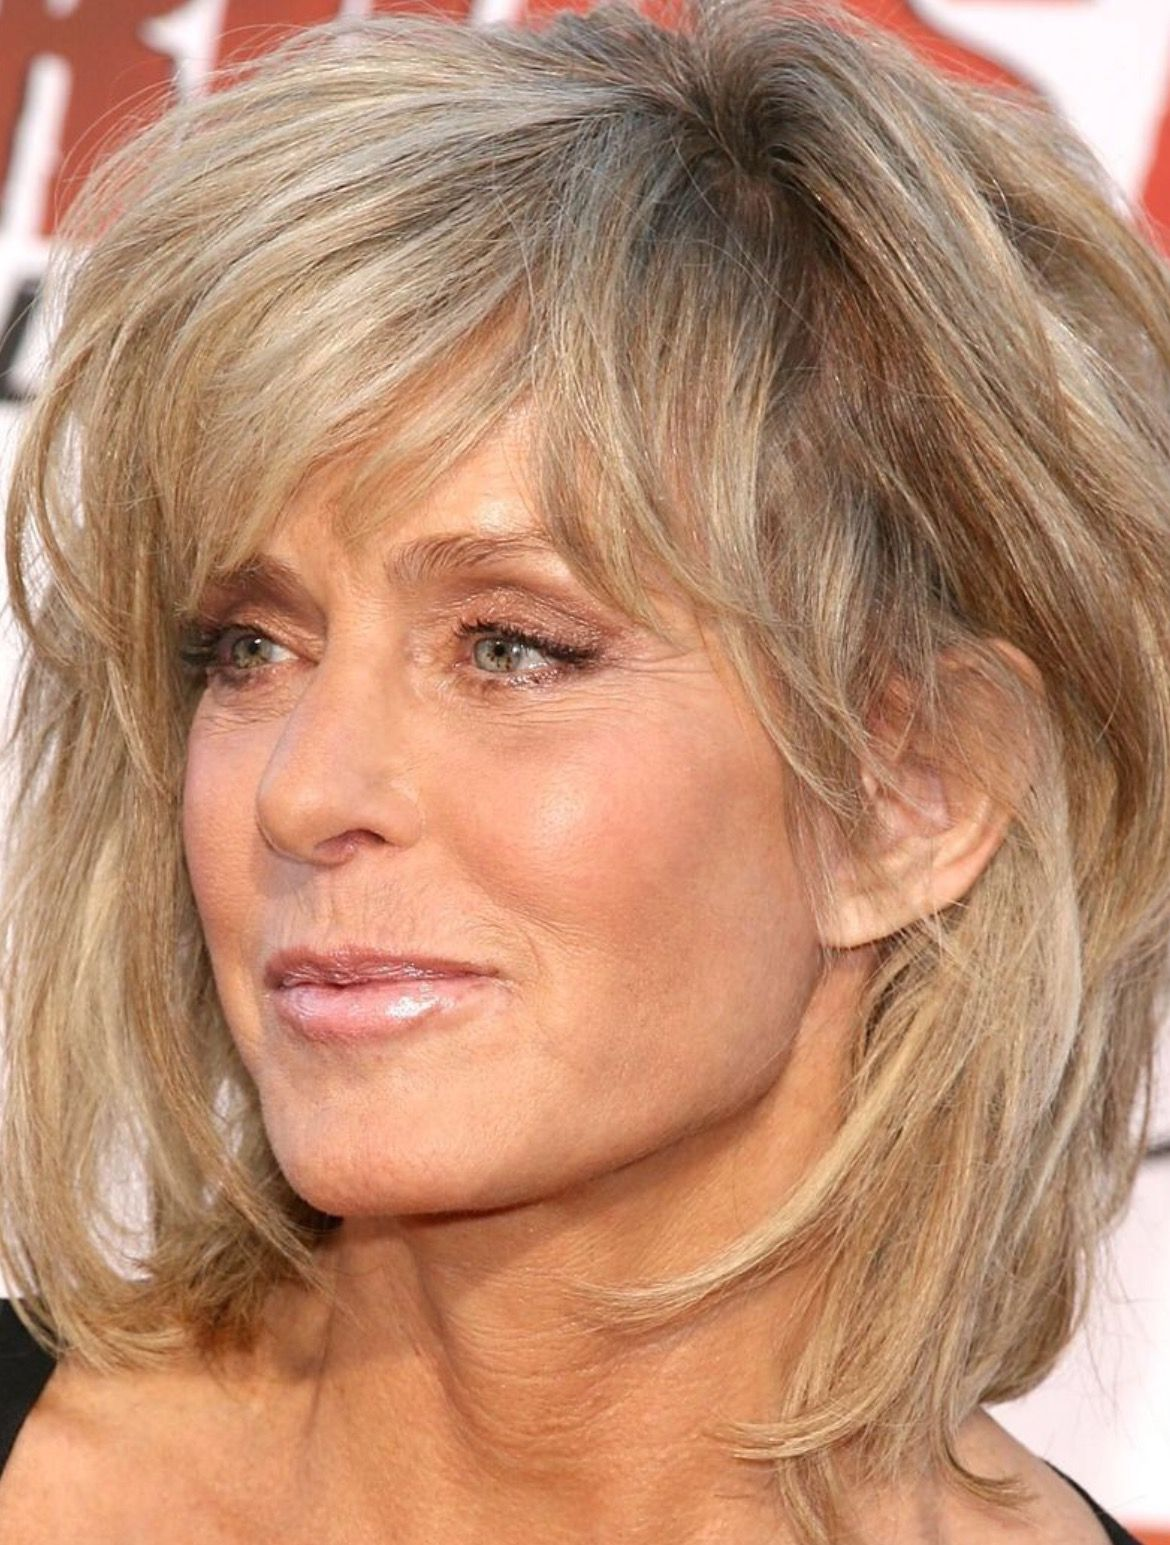 pin by farrah fawcett on farrah fawcett in 2019 | long hair